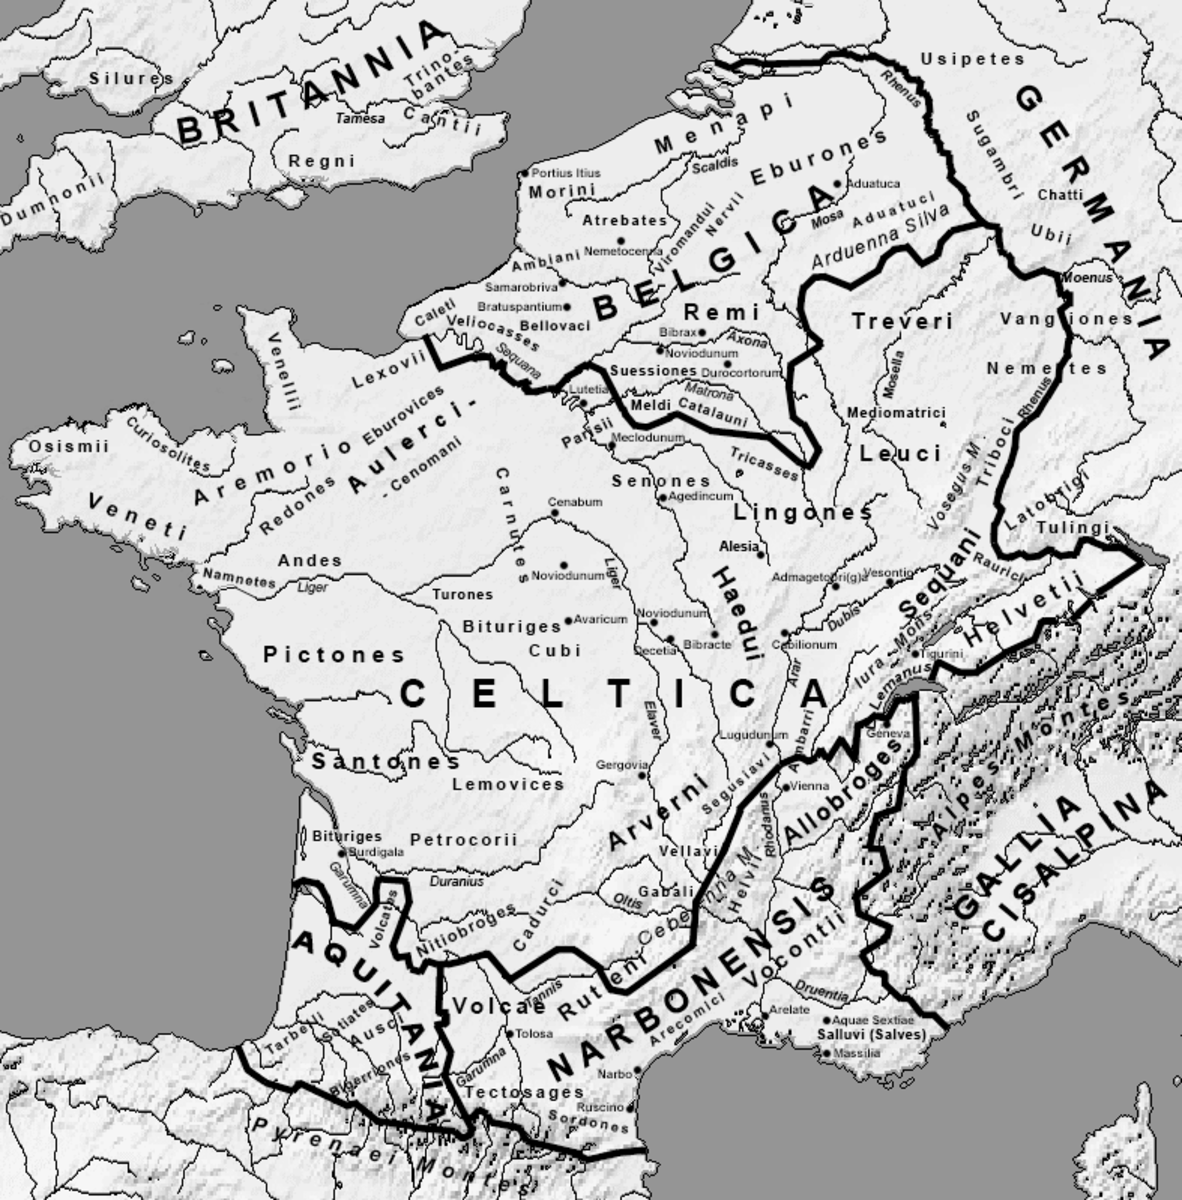 Gallic Tribes and towns in western Europe.